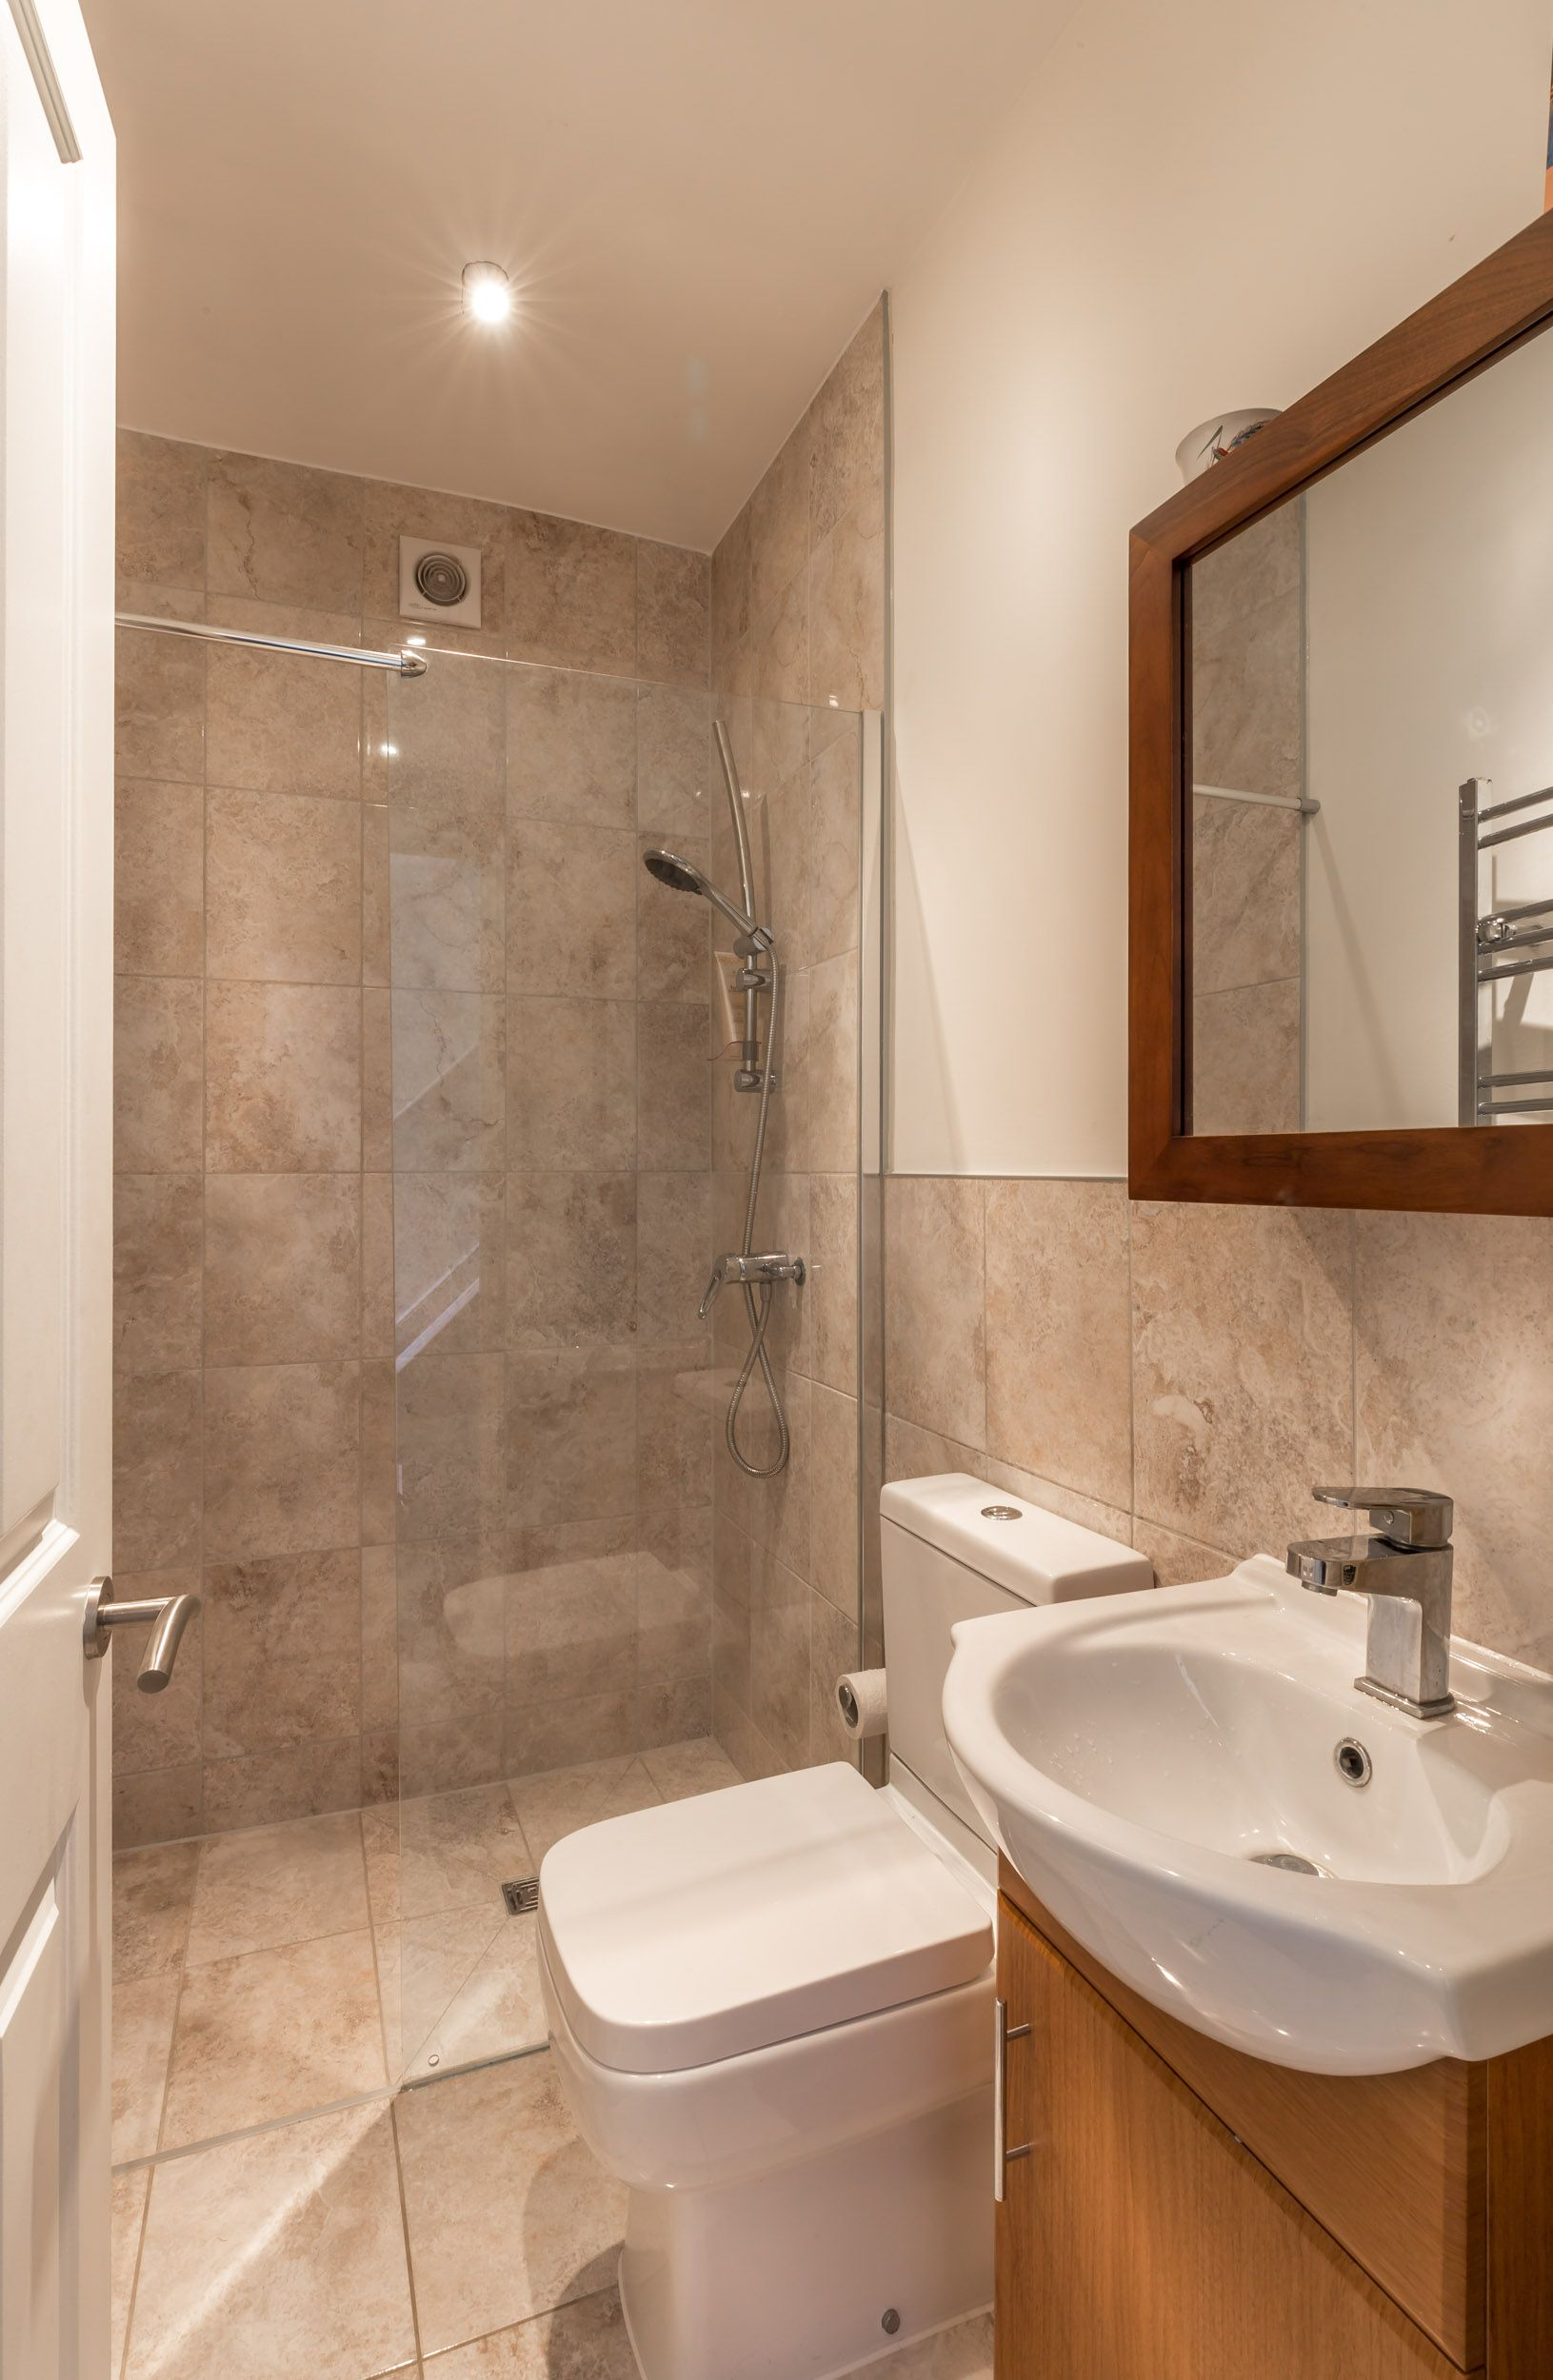 Small dodern downstairs shower room